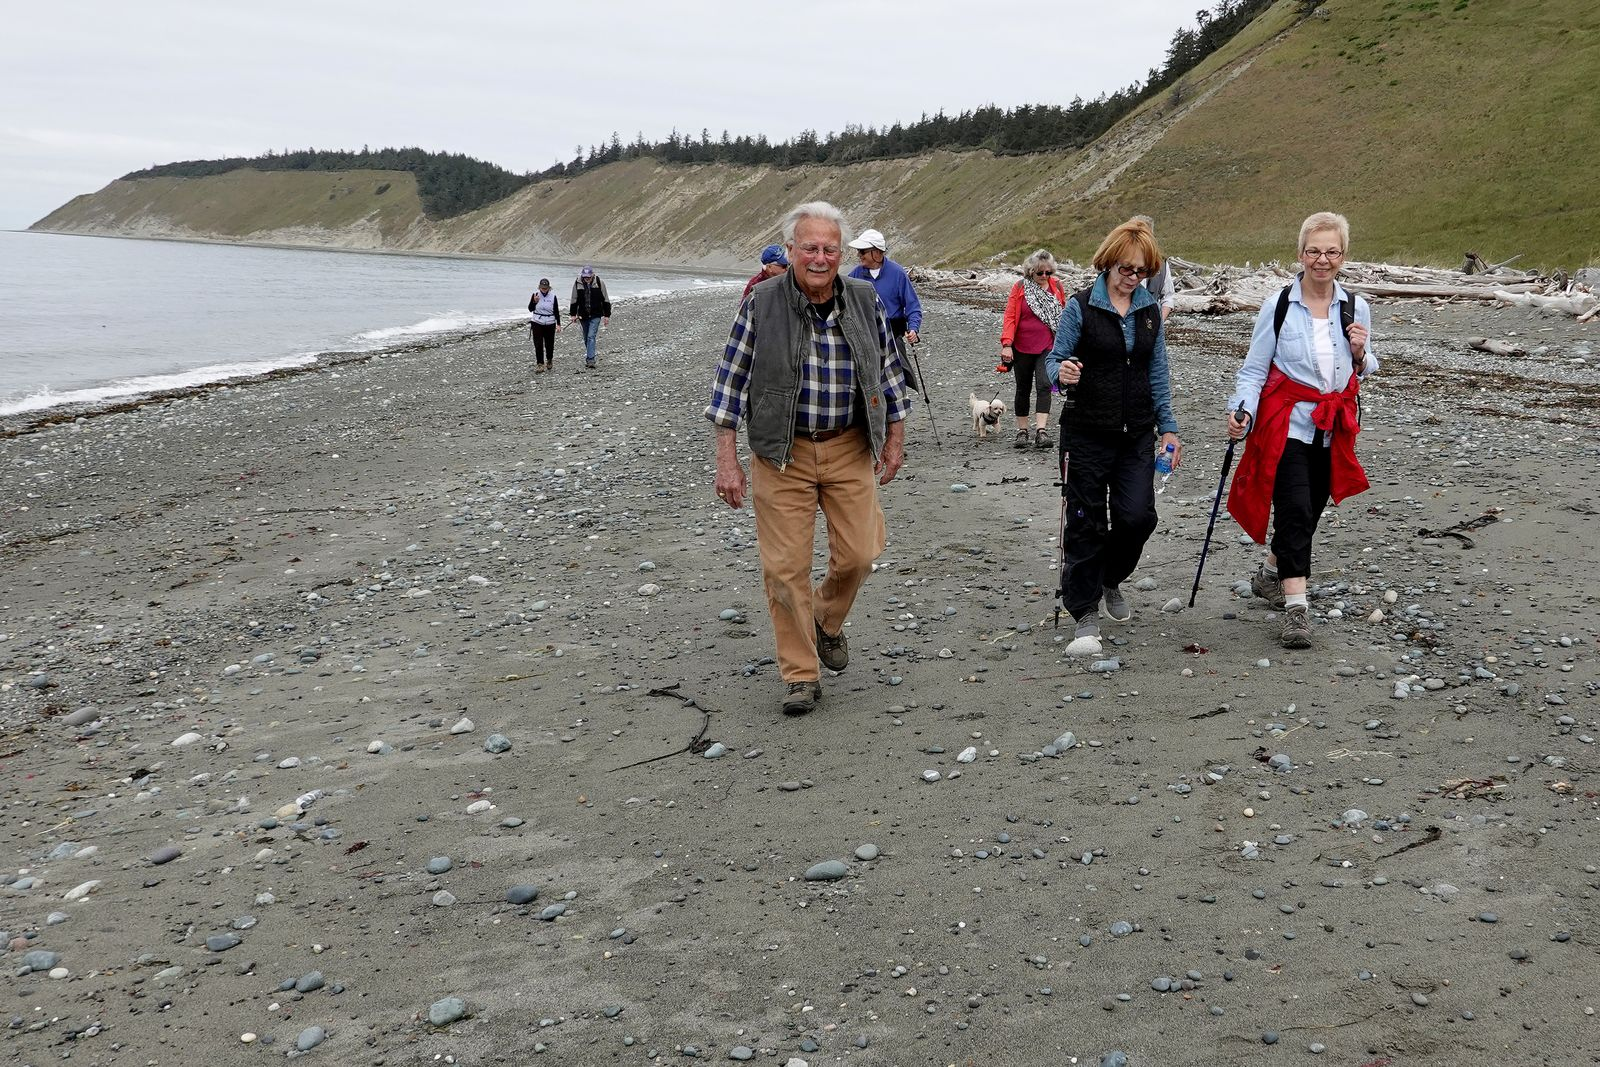 Jack, Judi and Sue walking on the beach